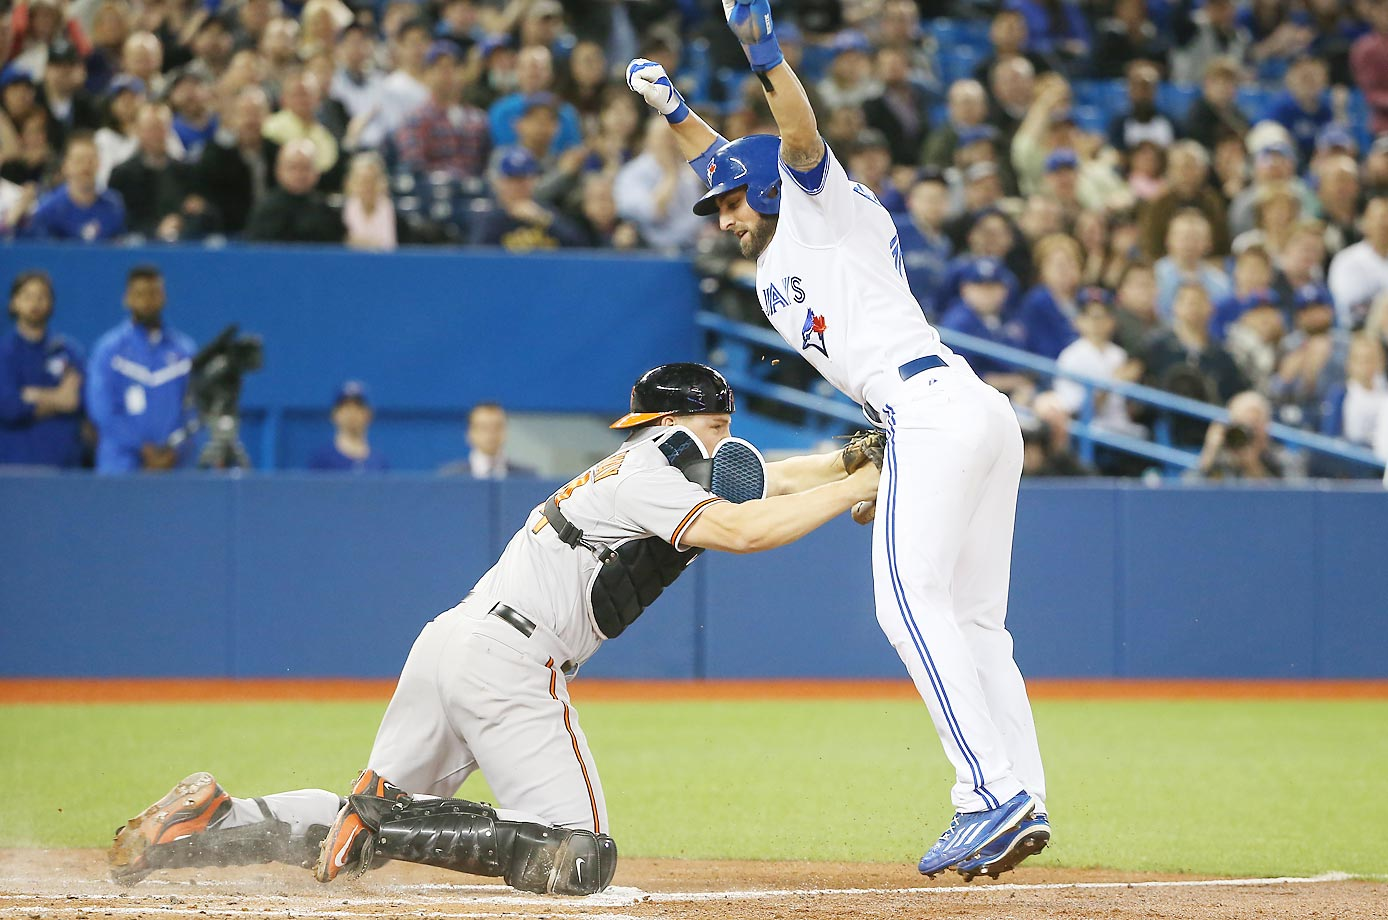 Kevin Pillar of the Blue Jays is tagged out at home by Ryan Lavarnway.